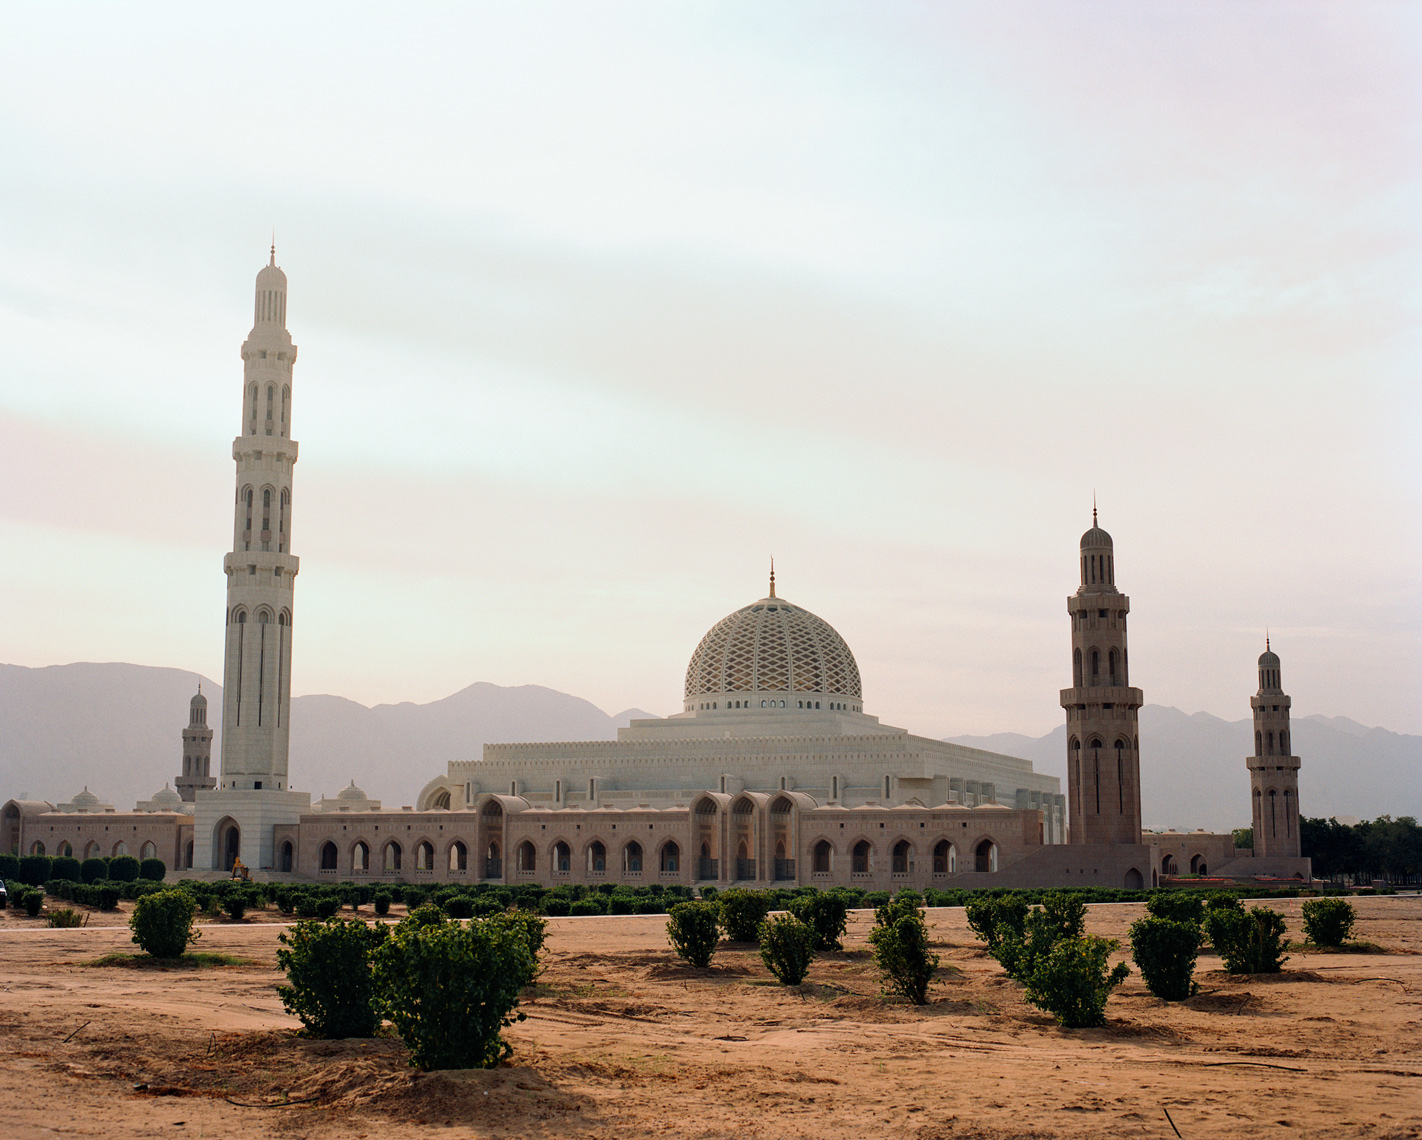 OMAN, Middle East, Muscat, Sultan Qaboos Grand Mosque, built in 2001, with a prayer hall accommodating 20000.